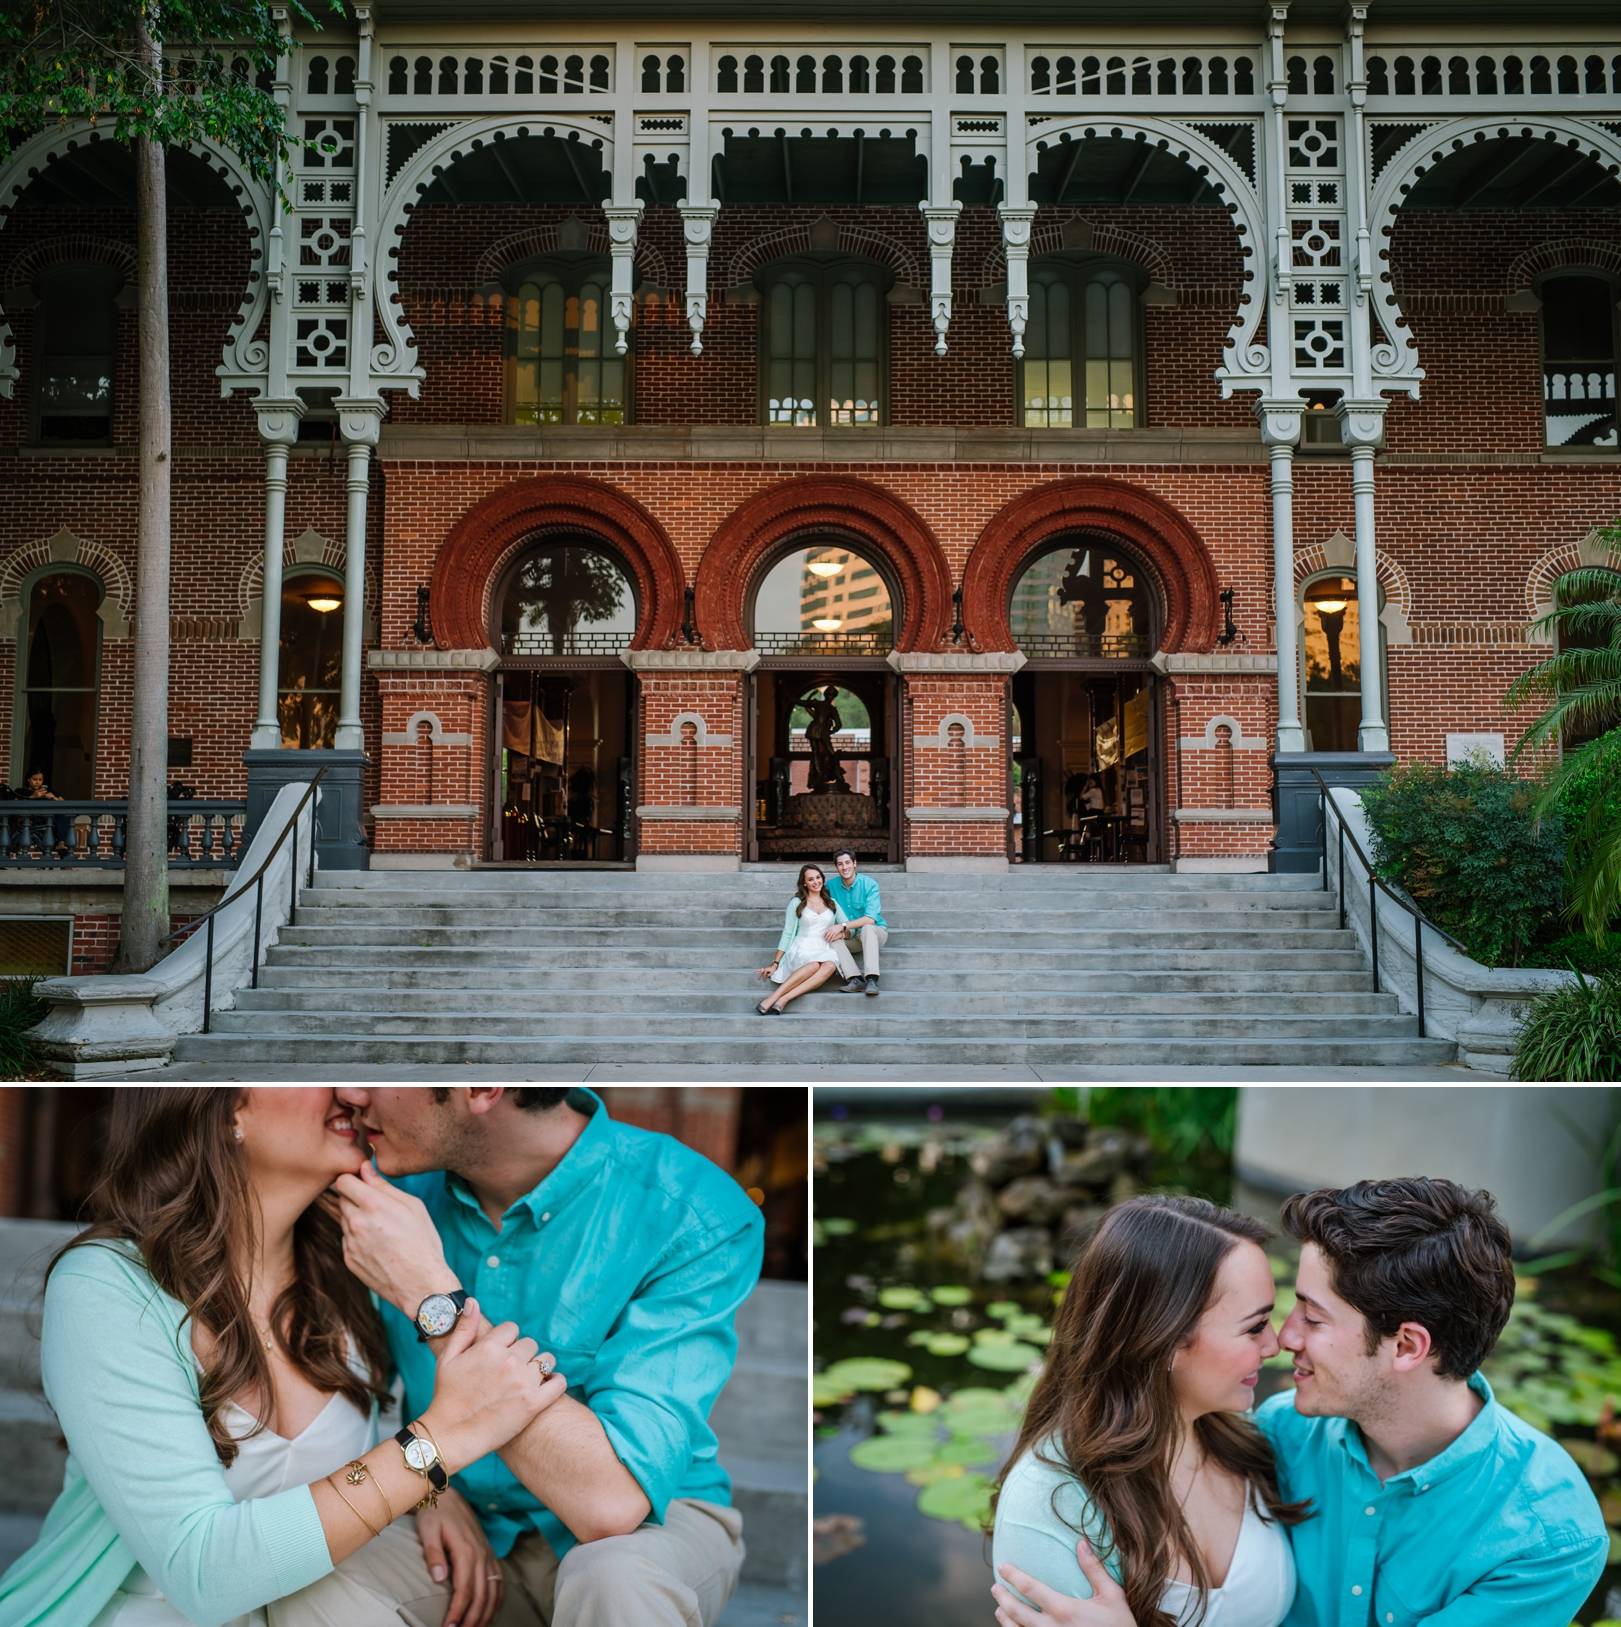 ashlee-hamon-photography-tampa-buddy-brew-coffee-shop-engagement_0007.jpg